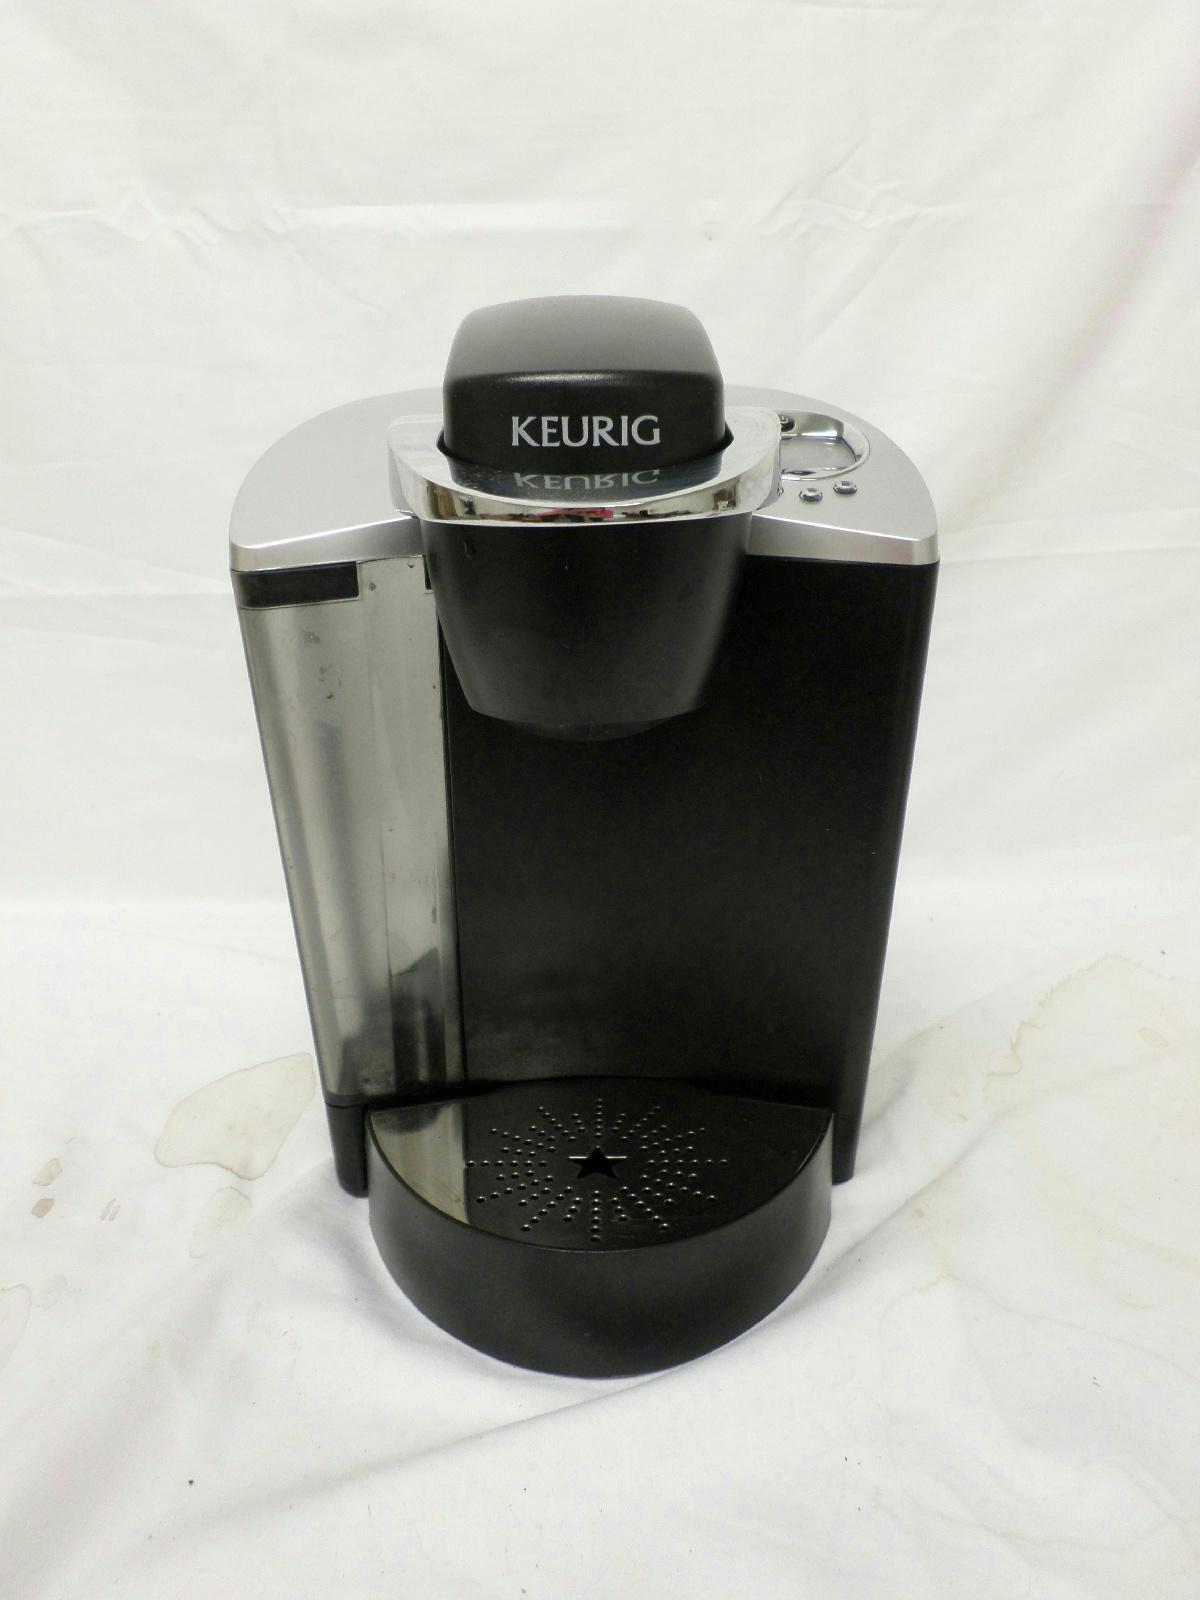 Keurig B60 Coffee Maker Special Edition Brewing System Black eBay